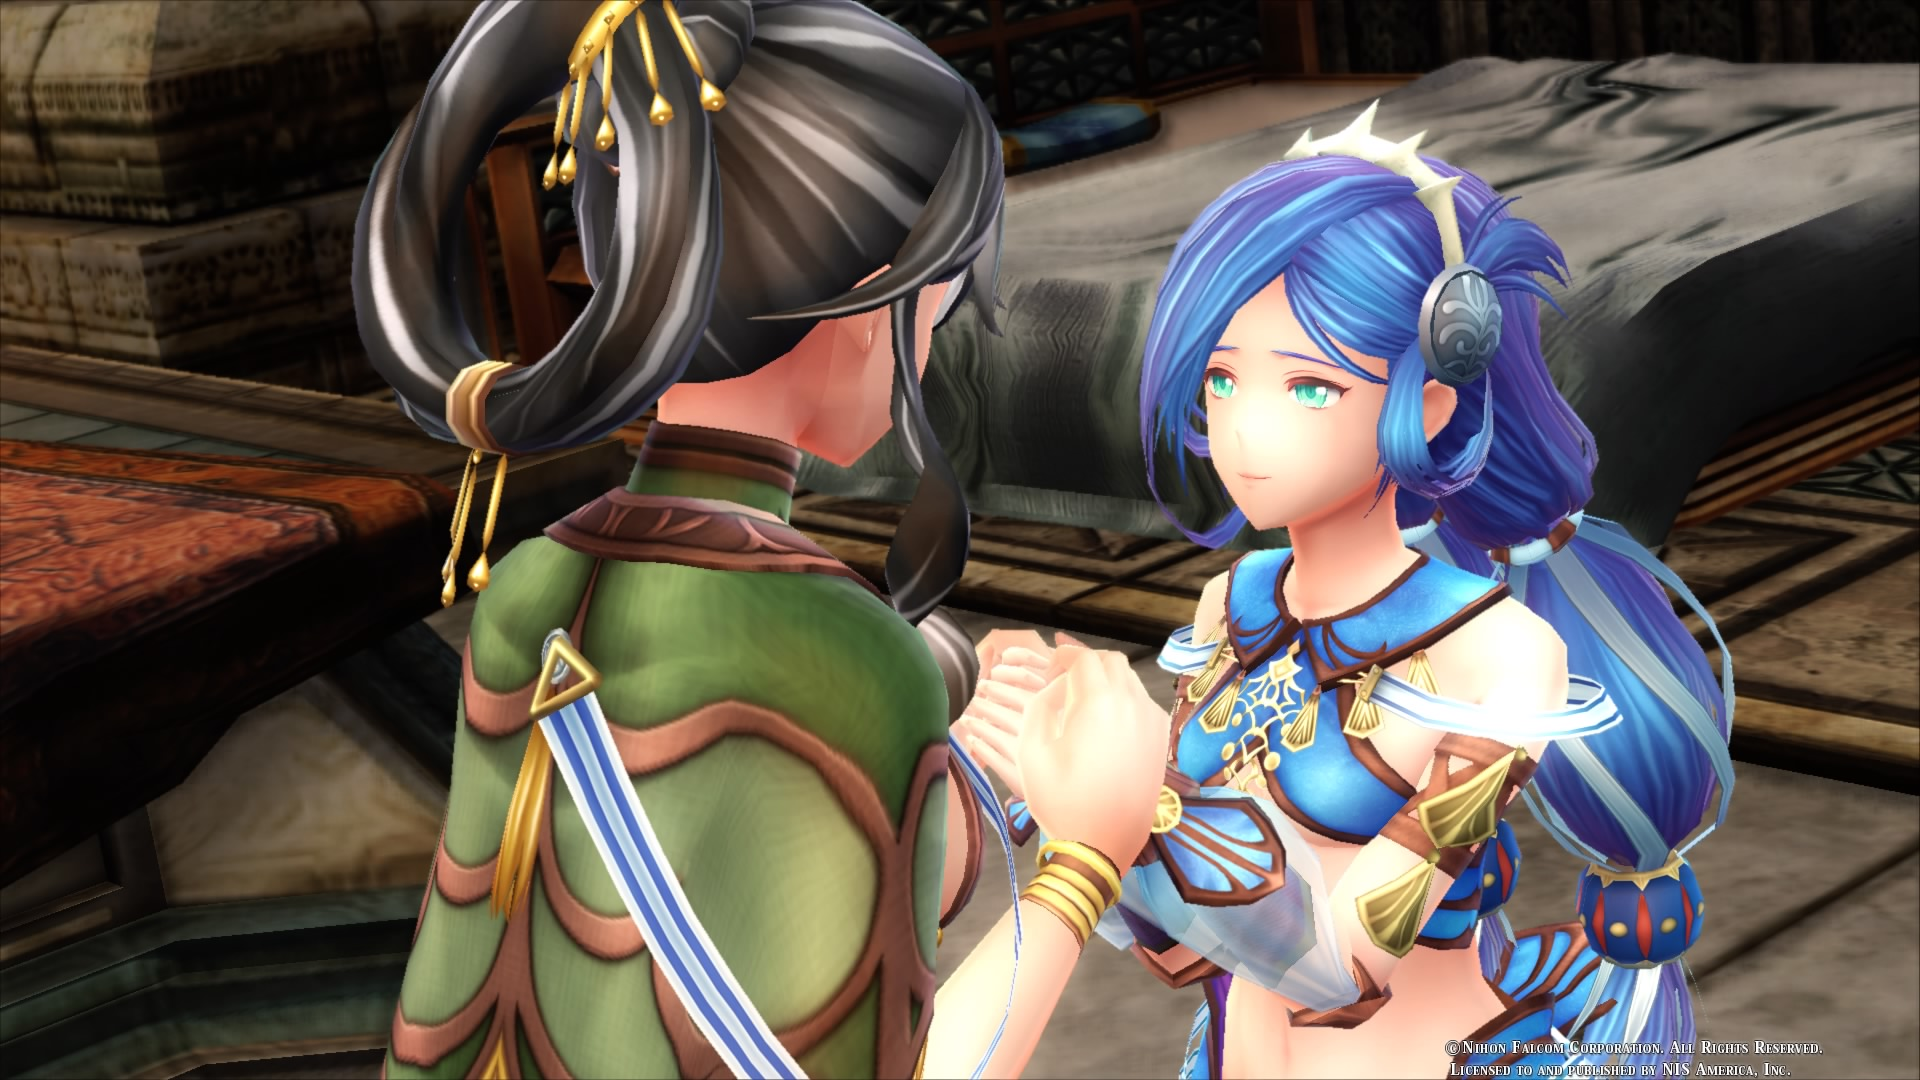 Ys Viii Is Heading To Mobile Devices